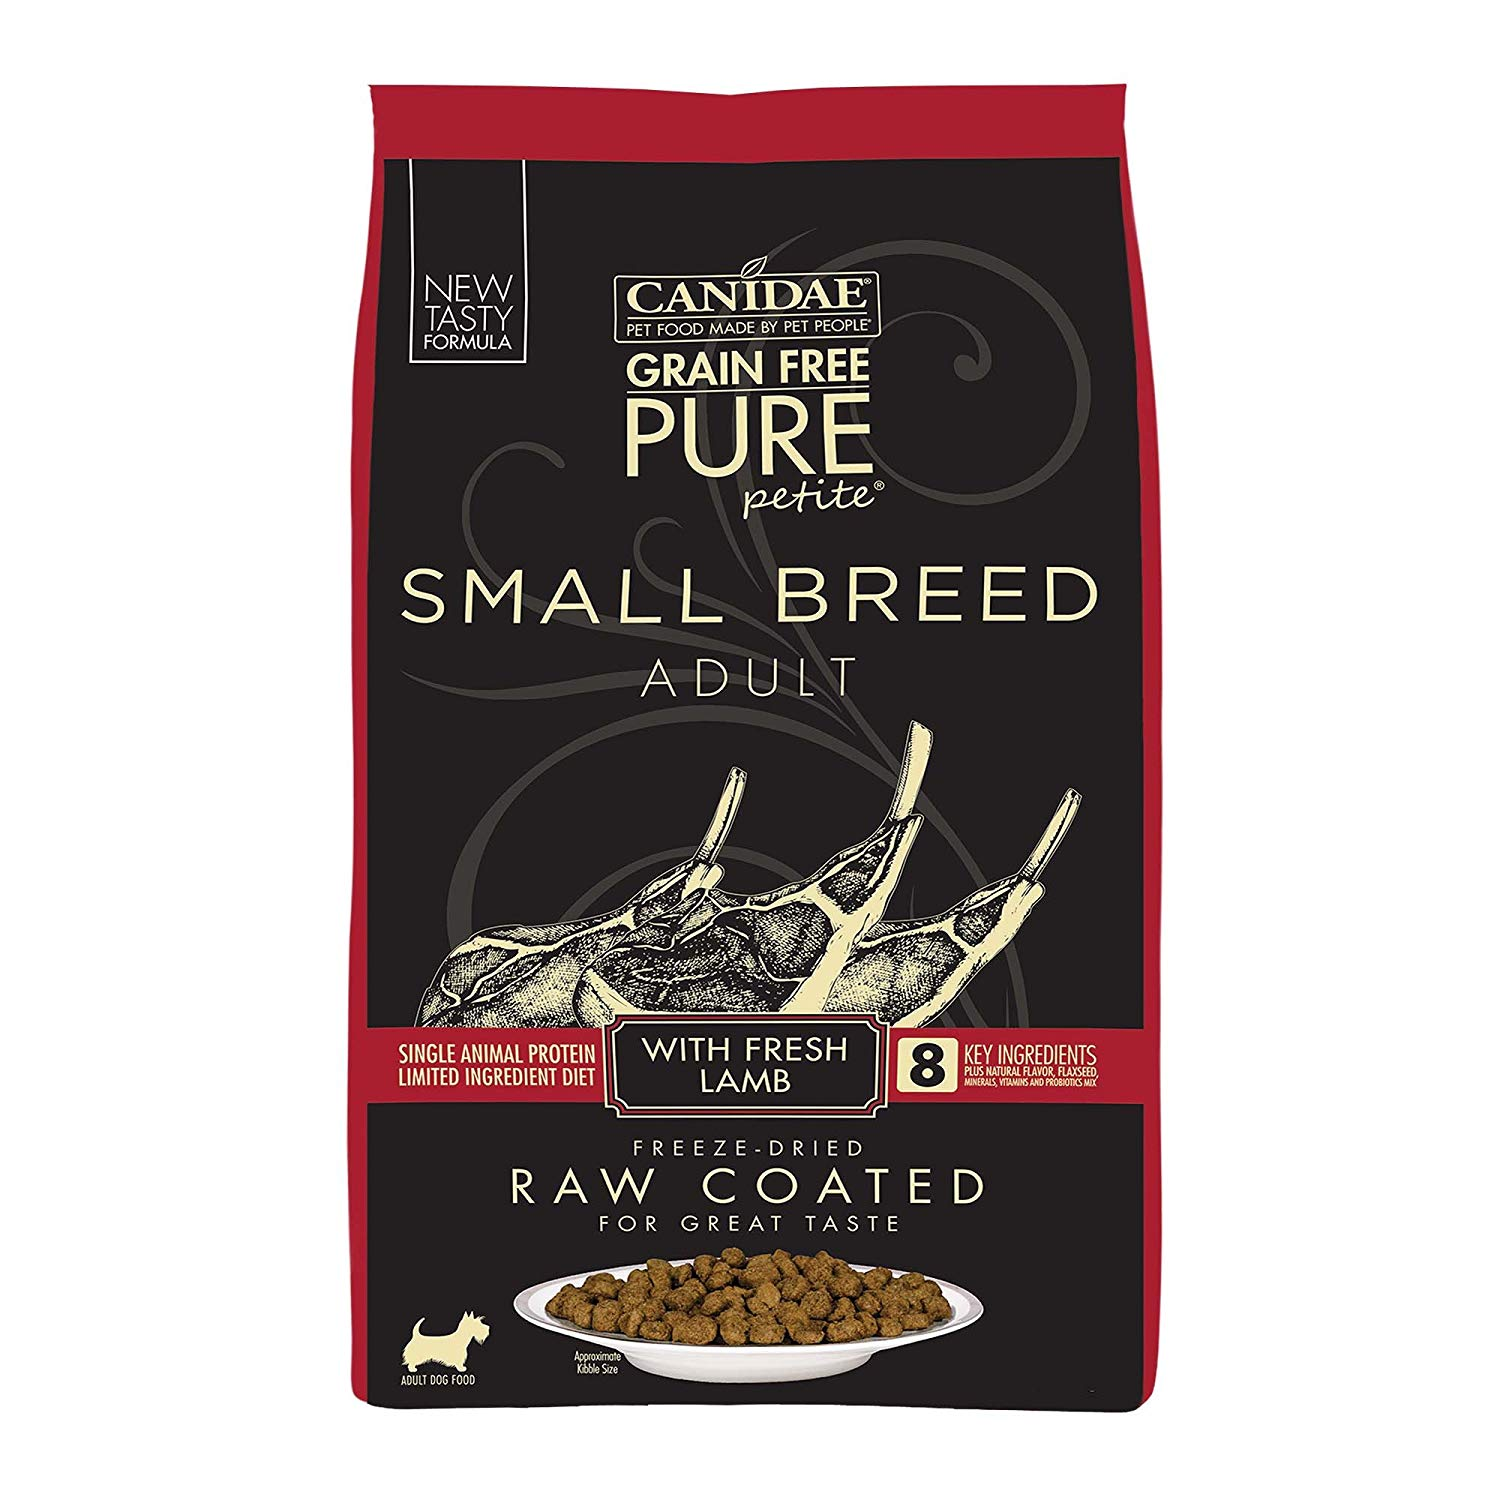 Canidae Grain Free Pure Petite Small Breed Raw Coated